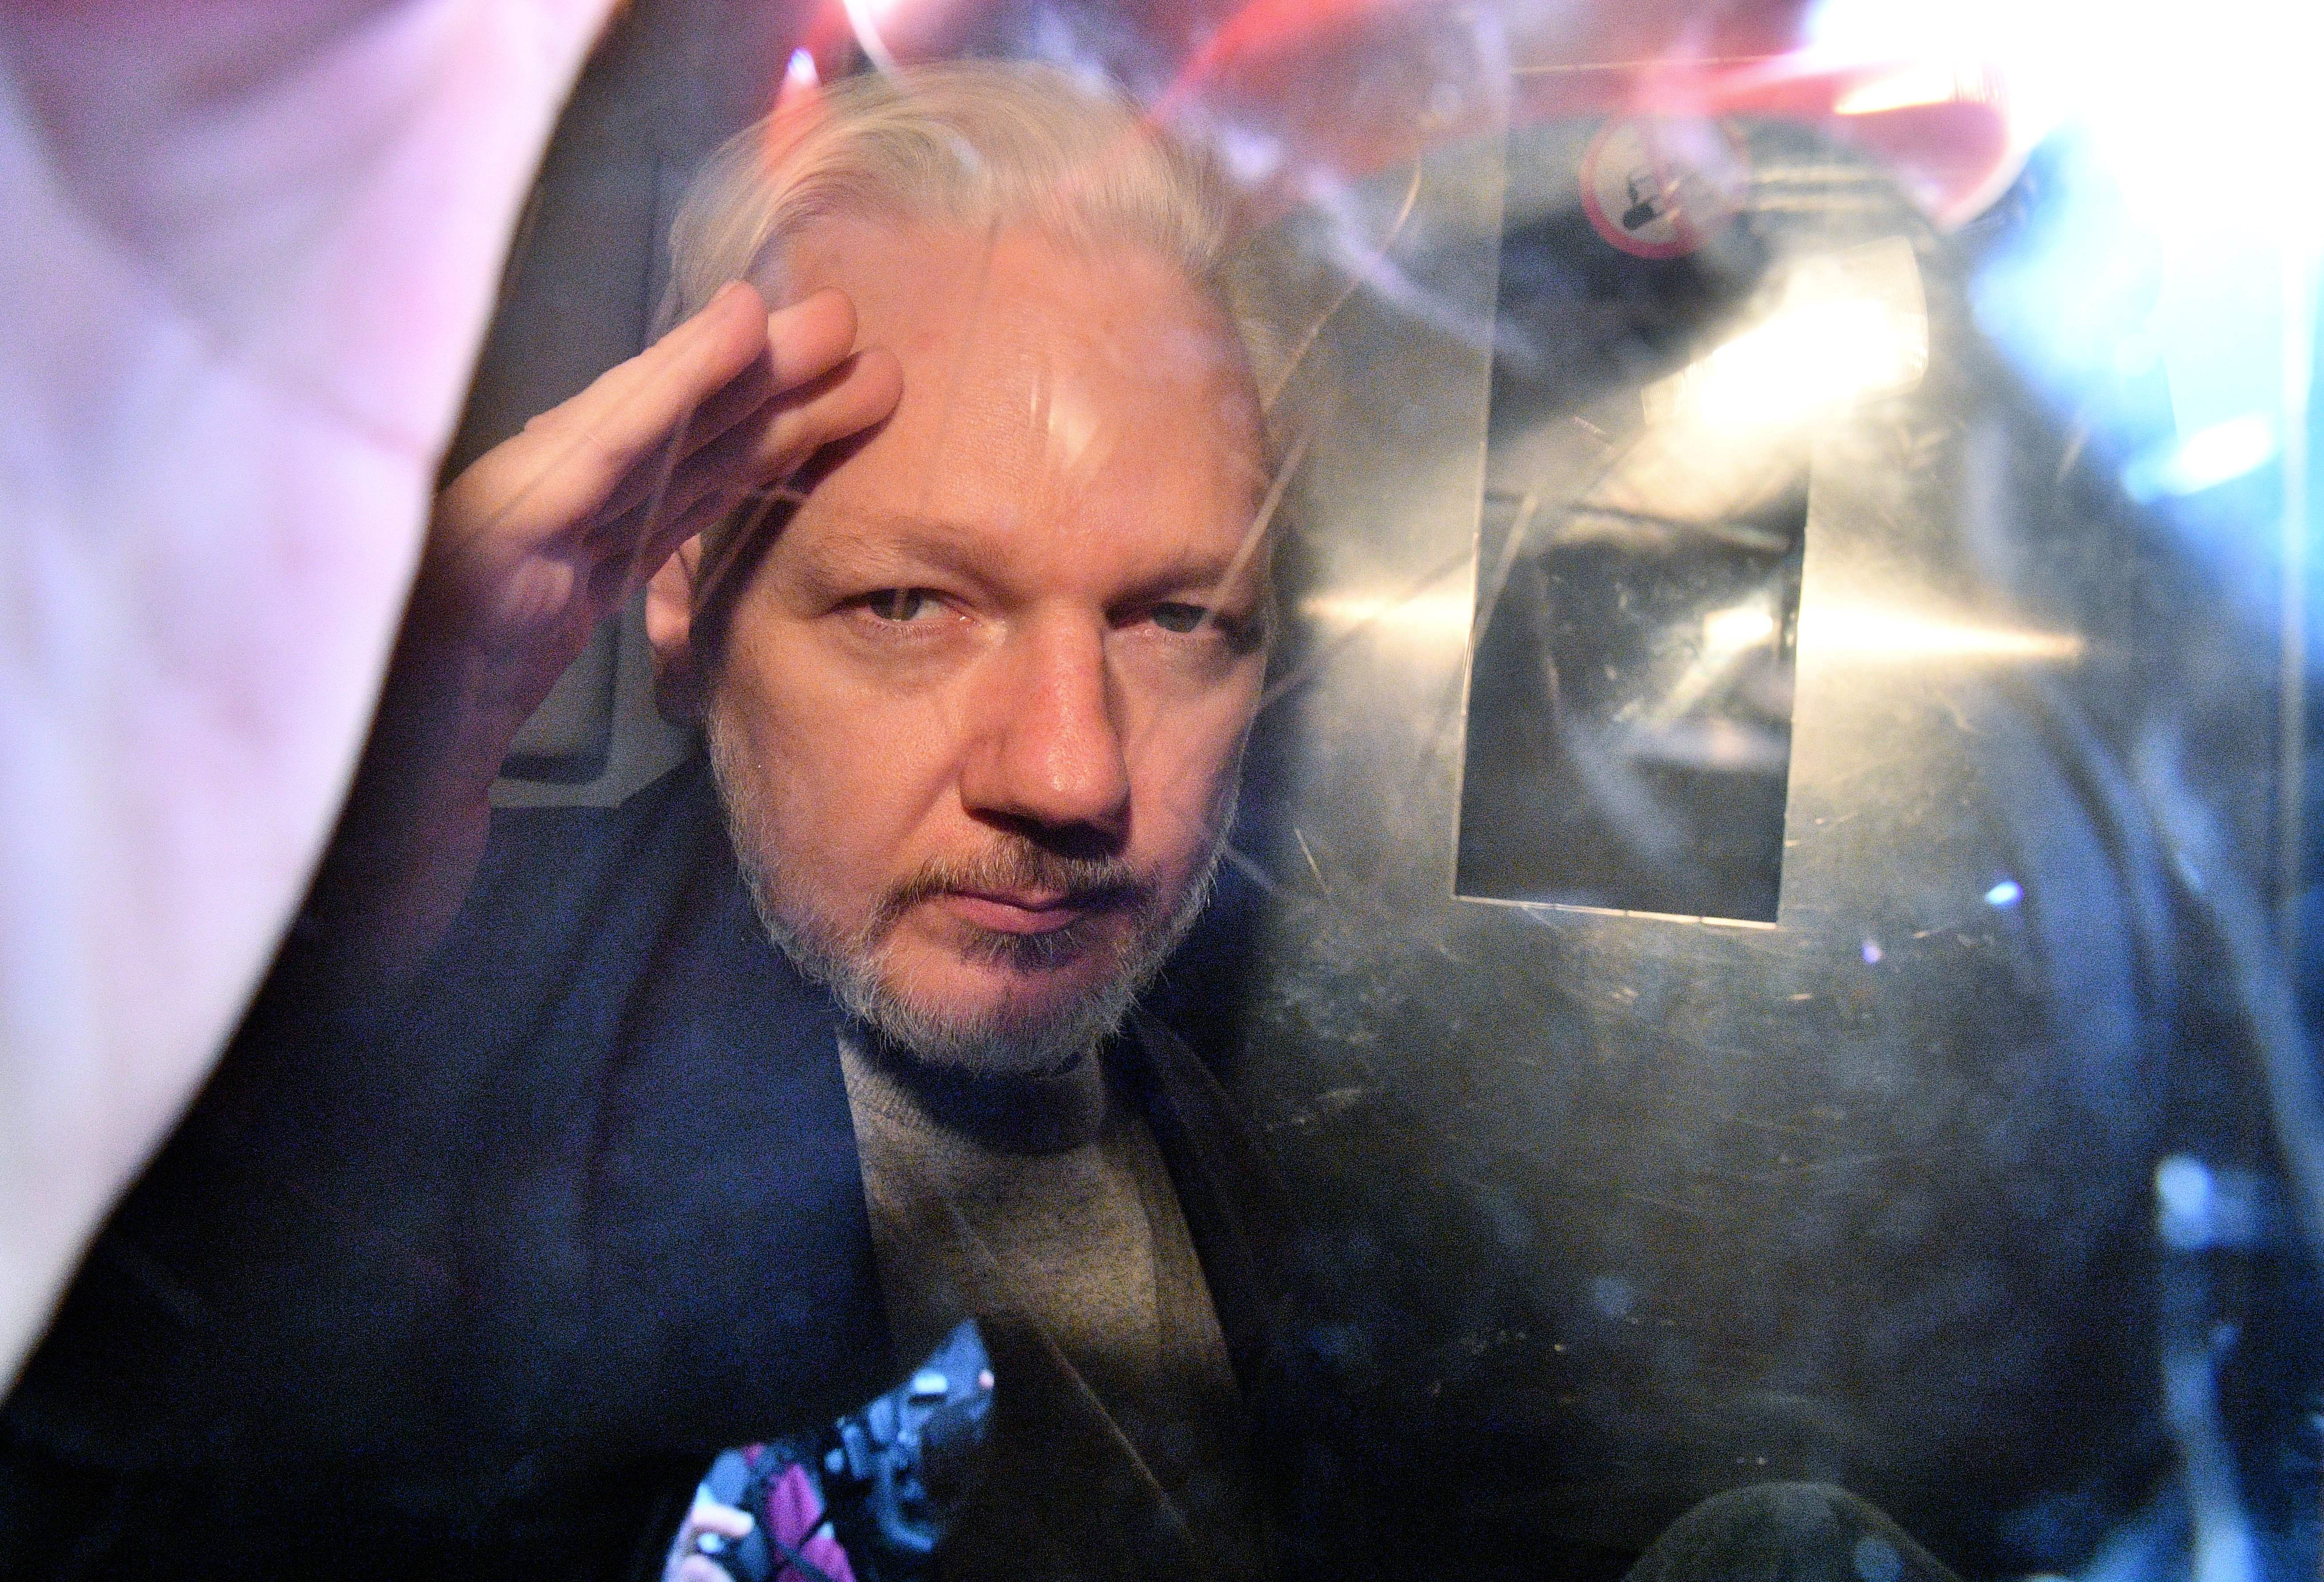 Swedish prosecutor drops Assange rape investigation